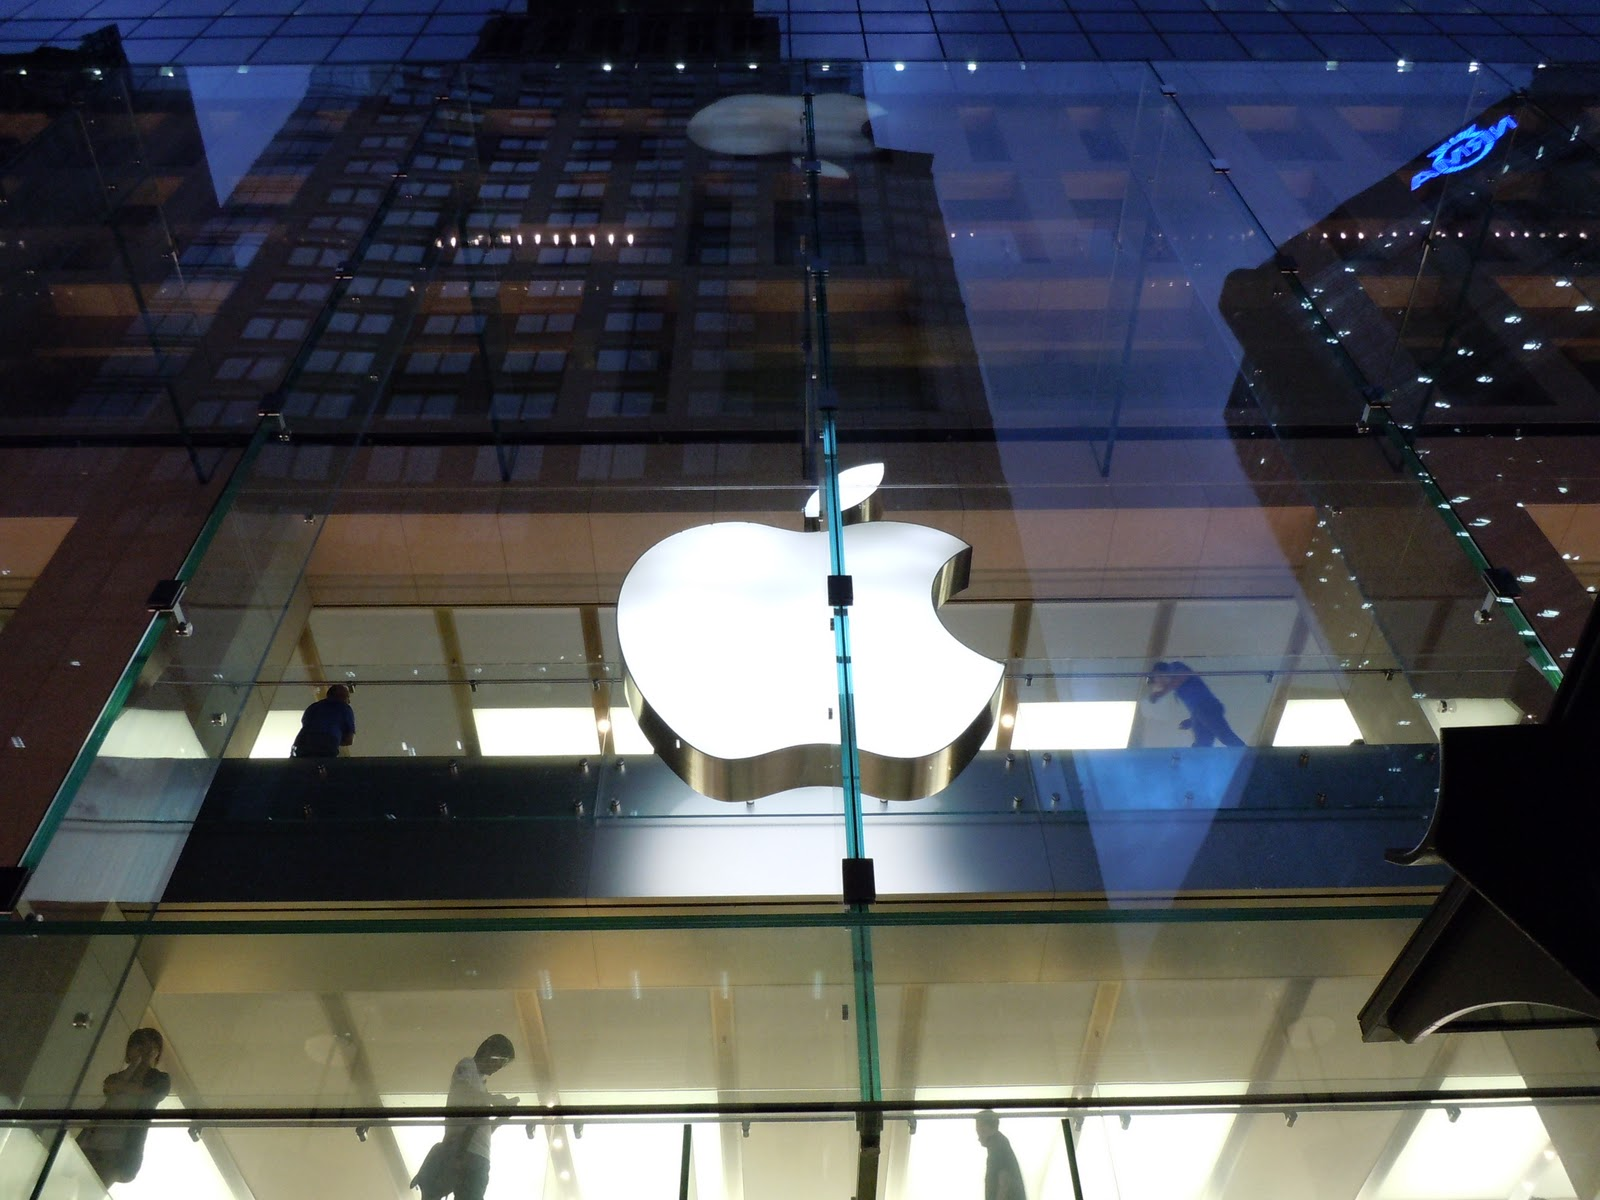 Apple Gearing Up iPad 2 Production Ahead Of Important Sale Seasons, iOS 5 Release